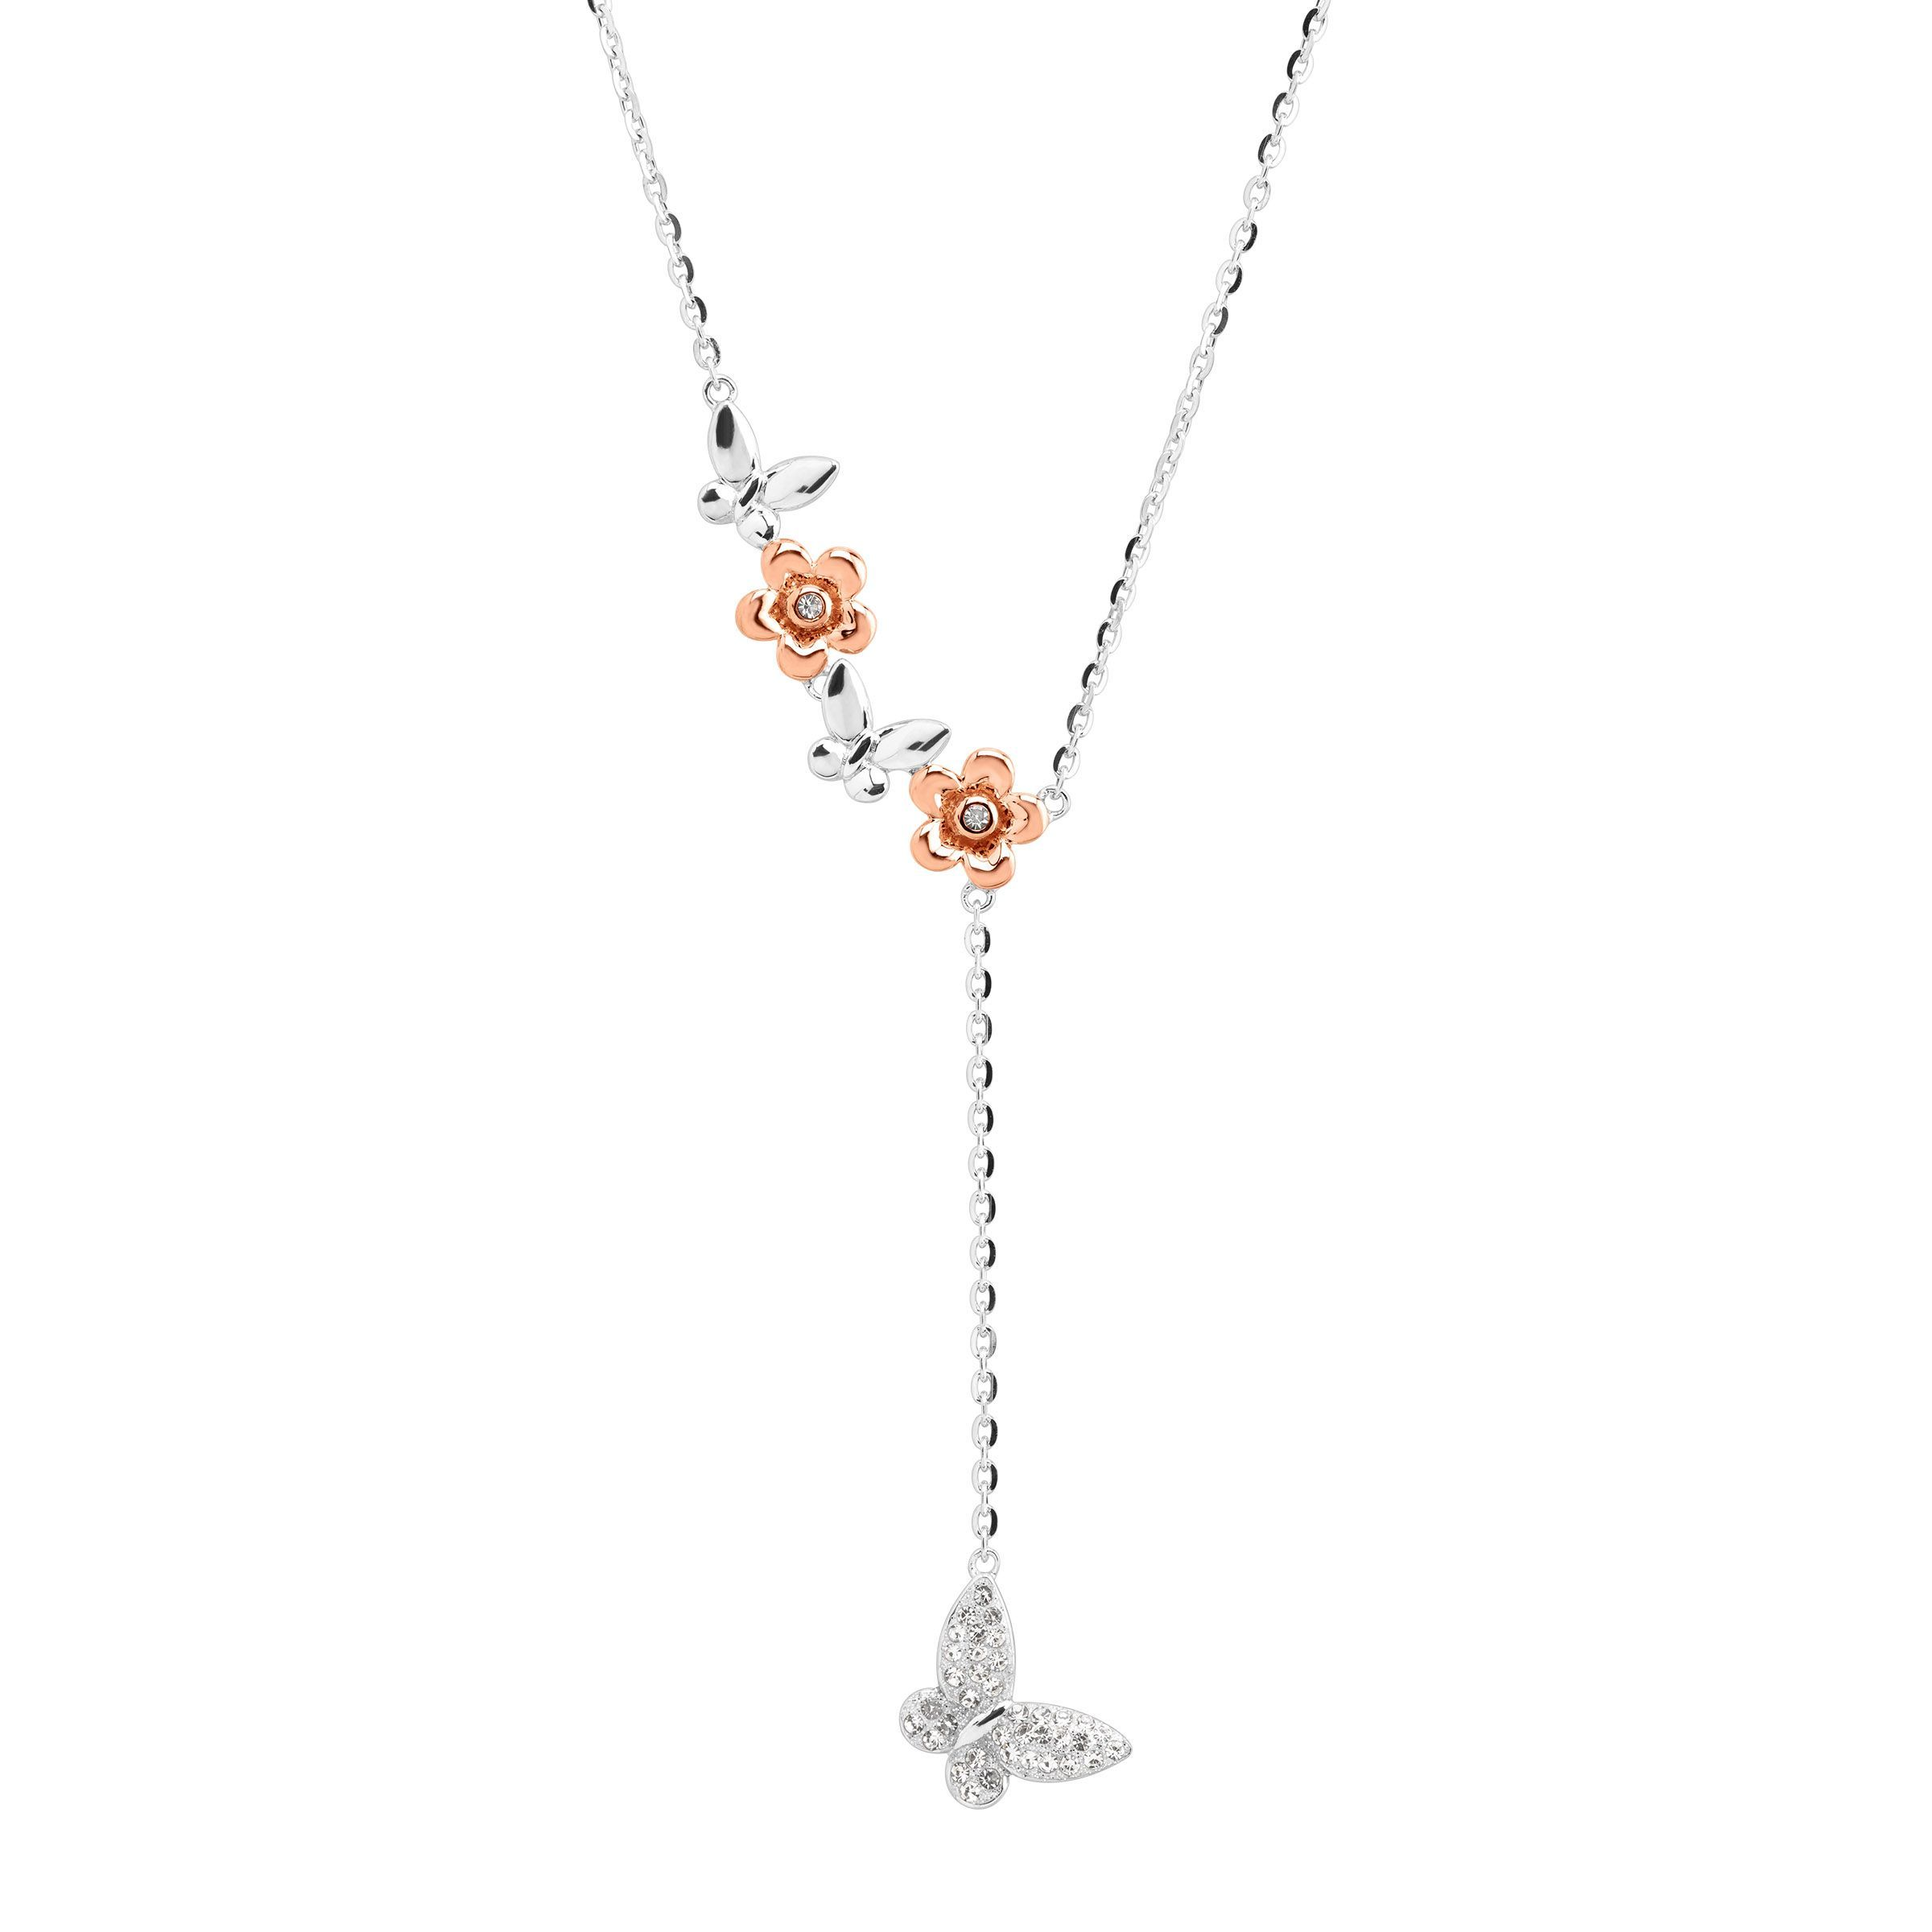 33c33dde0 Details about Crystaluxe Two-Tone Butterfly Lariat Necklace with Swarovski  Crystals in Silver